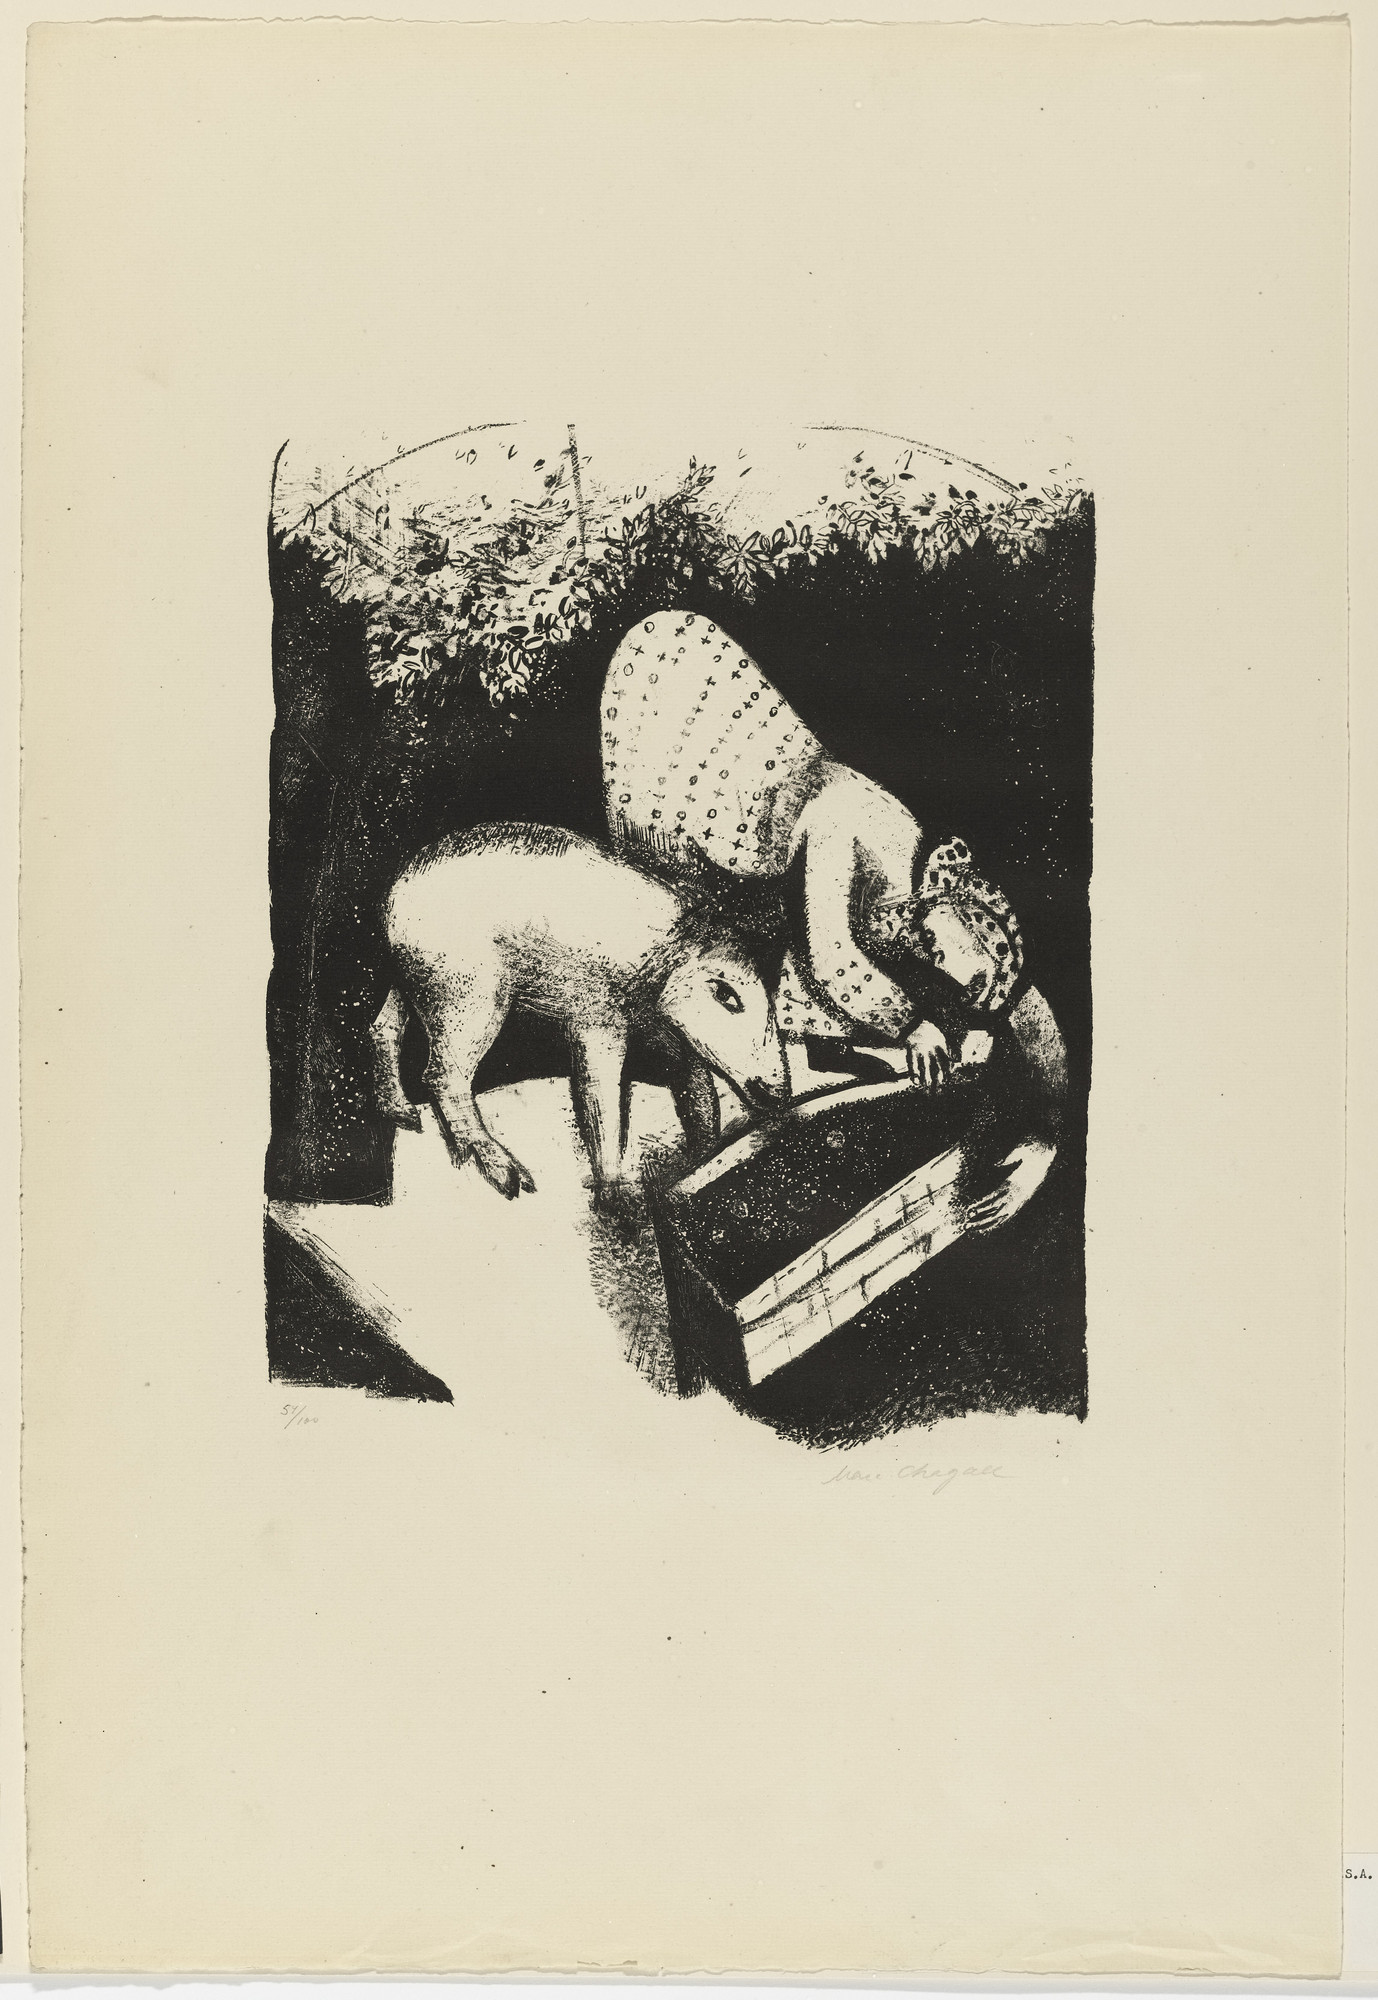 Marc Chagall. The Trough II (L'Auge II). 1924, published 1925